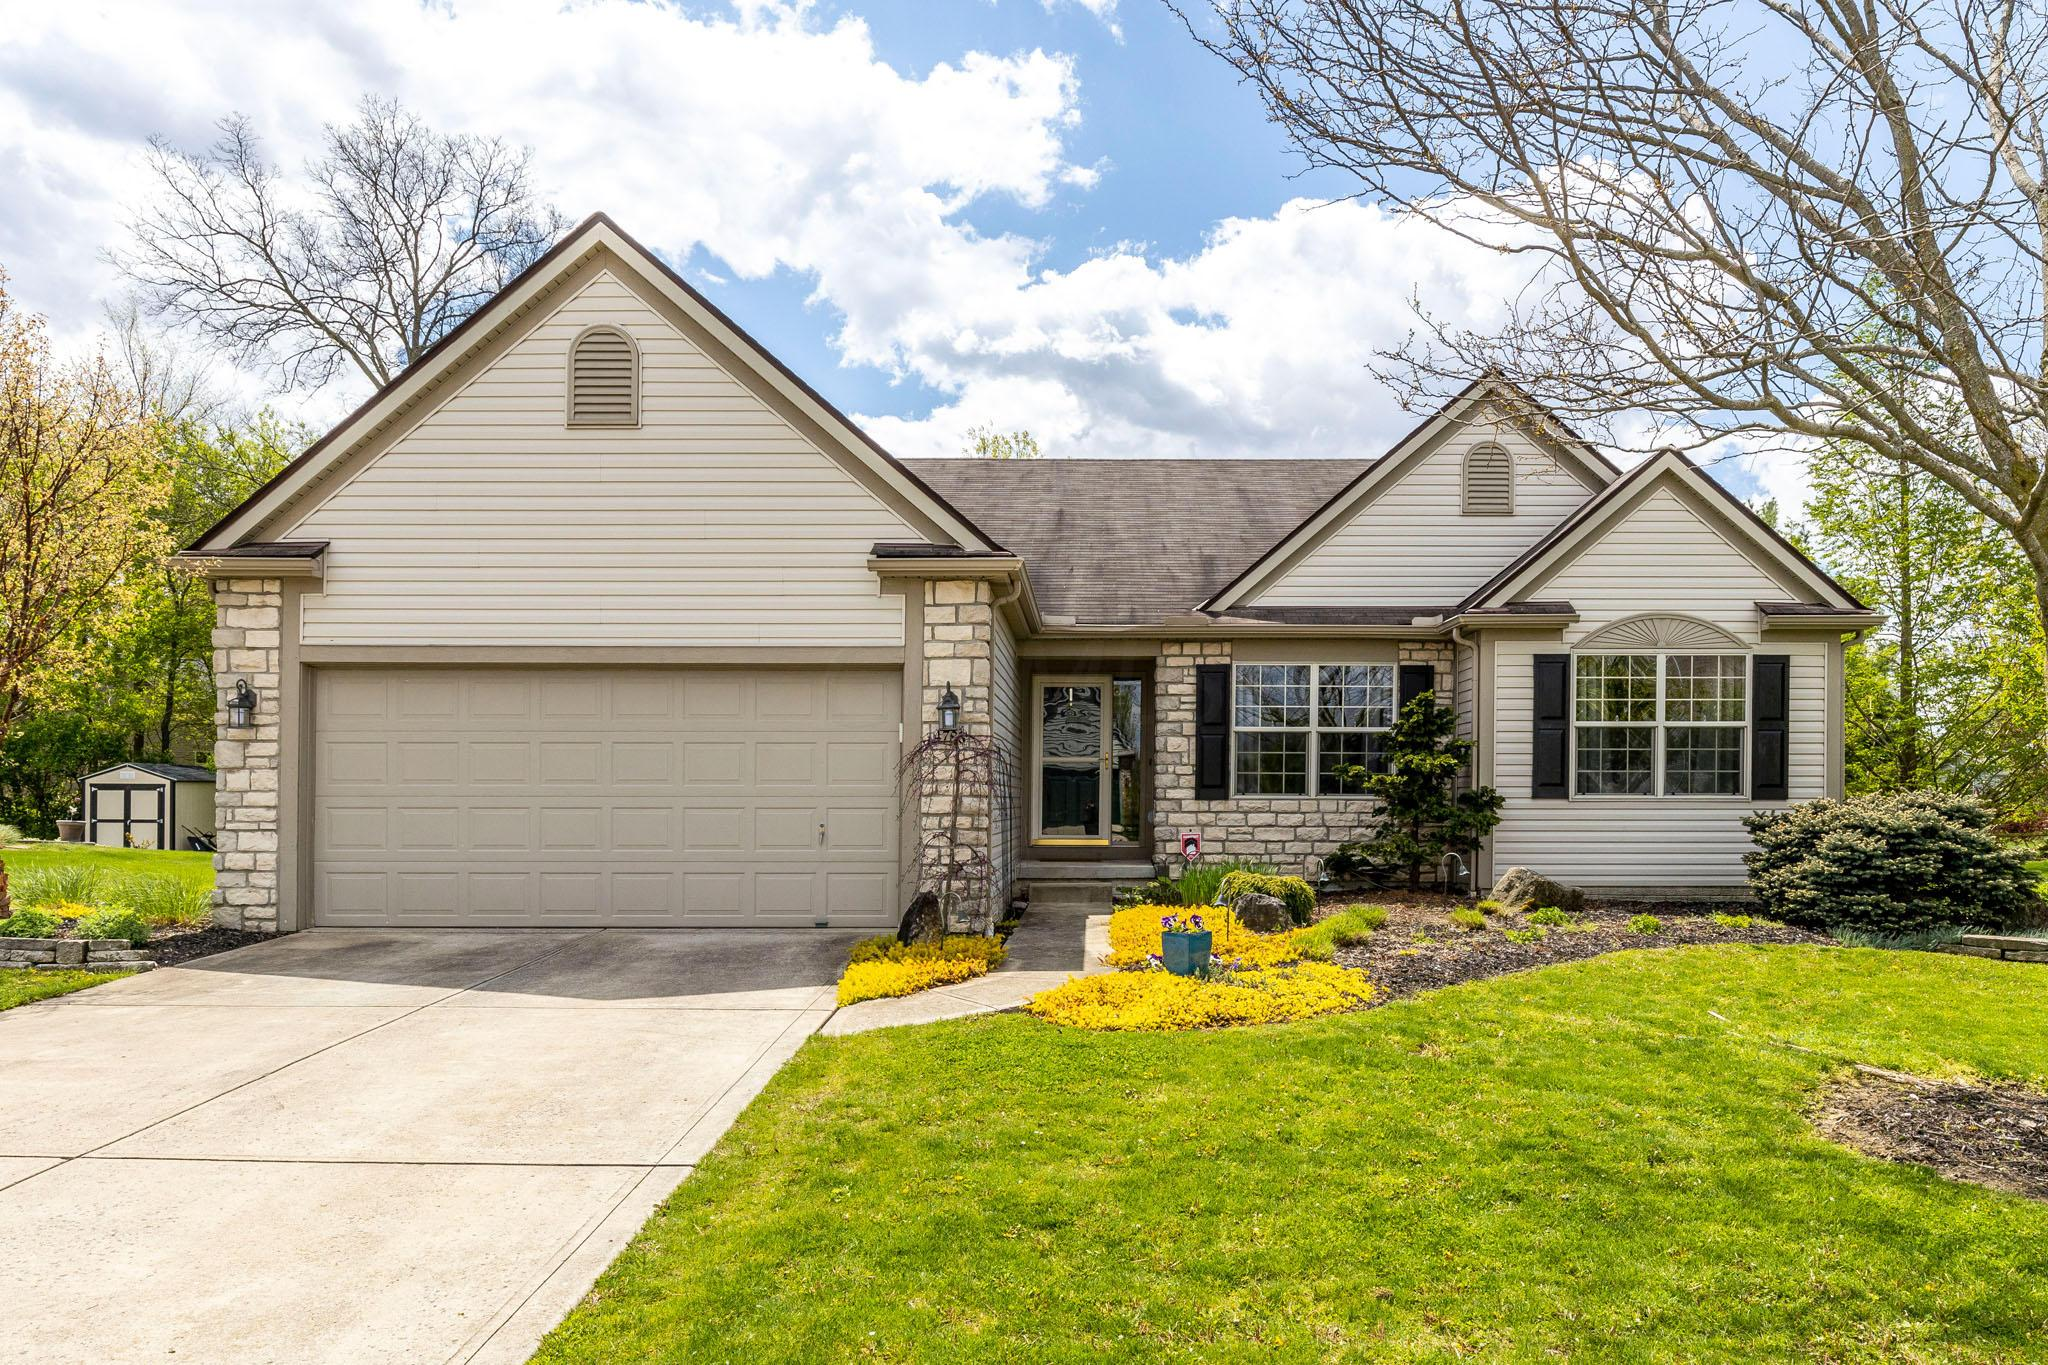 Photo of 4783 Golden Grove Drive, Groveport, OH 43125